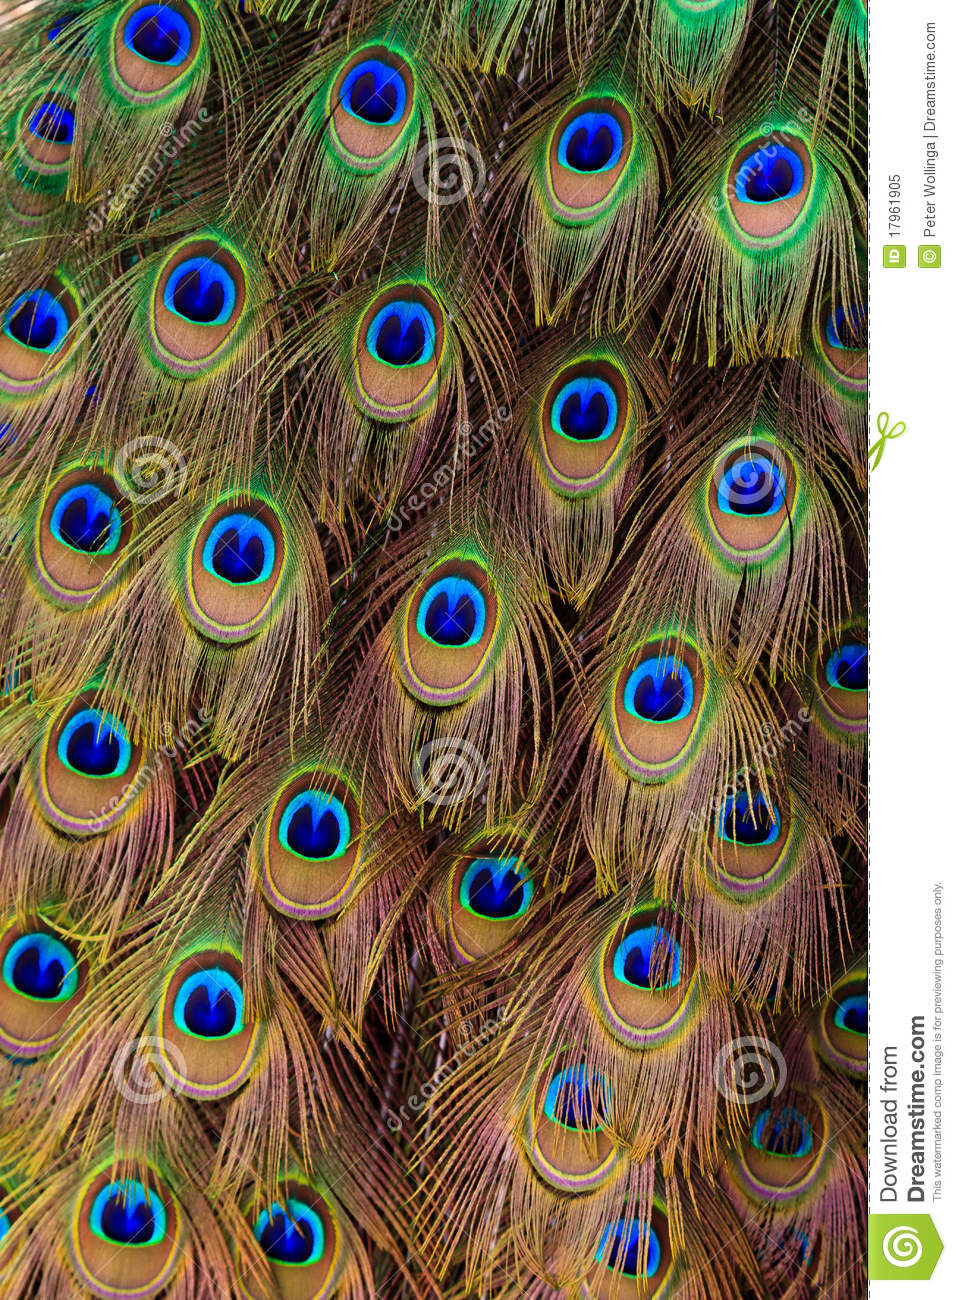 Peacock Bird Tail Feathers In Close Up Royalty Free Stock ...